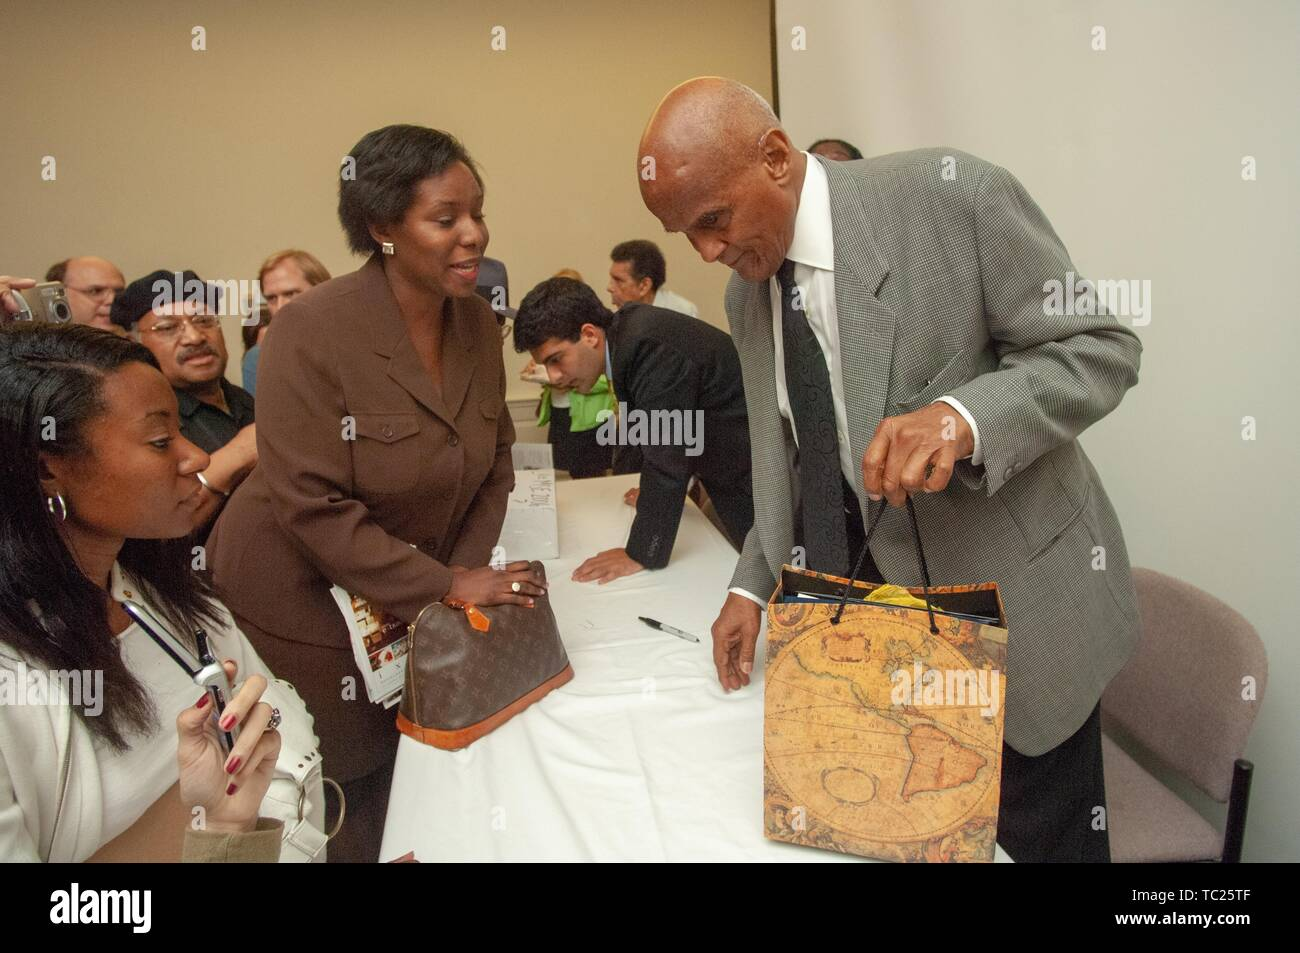 An attendee speaks with performer and activist Harry Belafonte during a Milton S Eisenhower Symposium, Homewood Campus of Johns Hopkins University, Baltimore, Maryland, September 19, 2006. From the Homewood Photography Collection. () Stock Photo